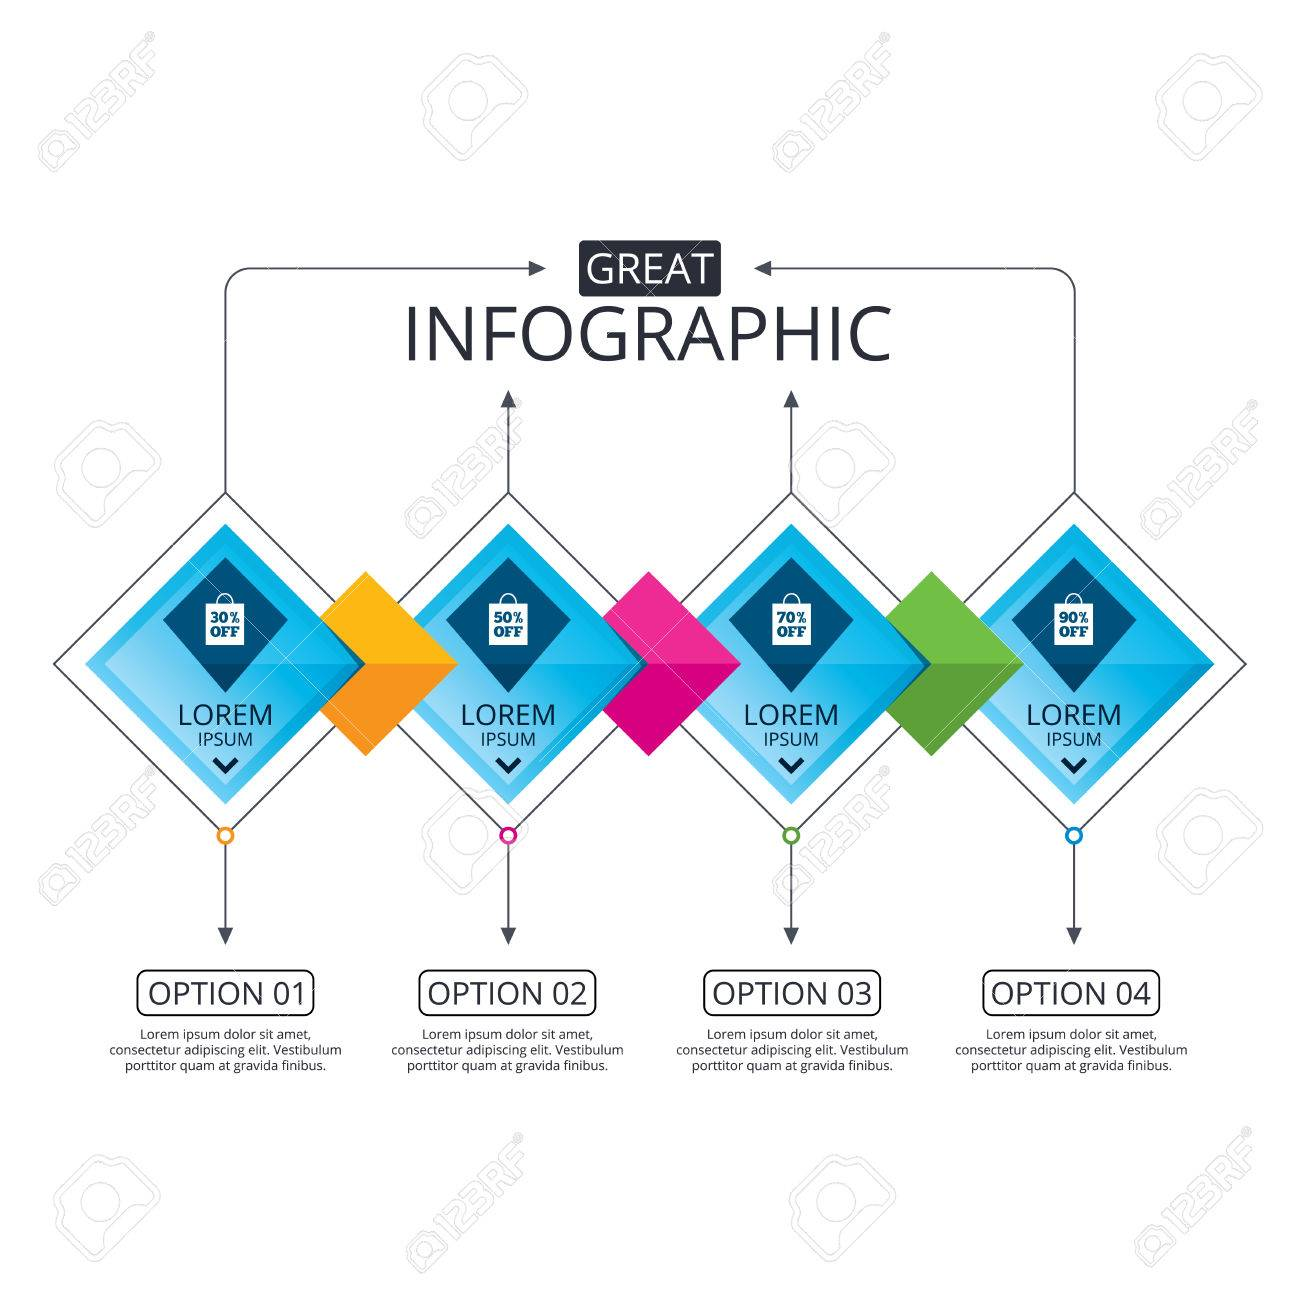 infographic flowchart template. business diagram with options